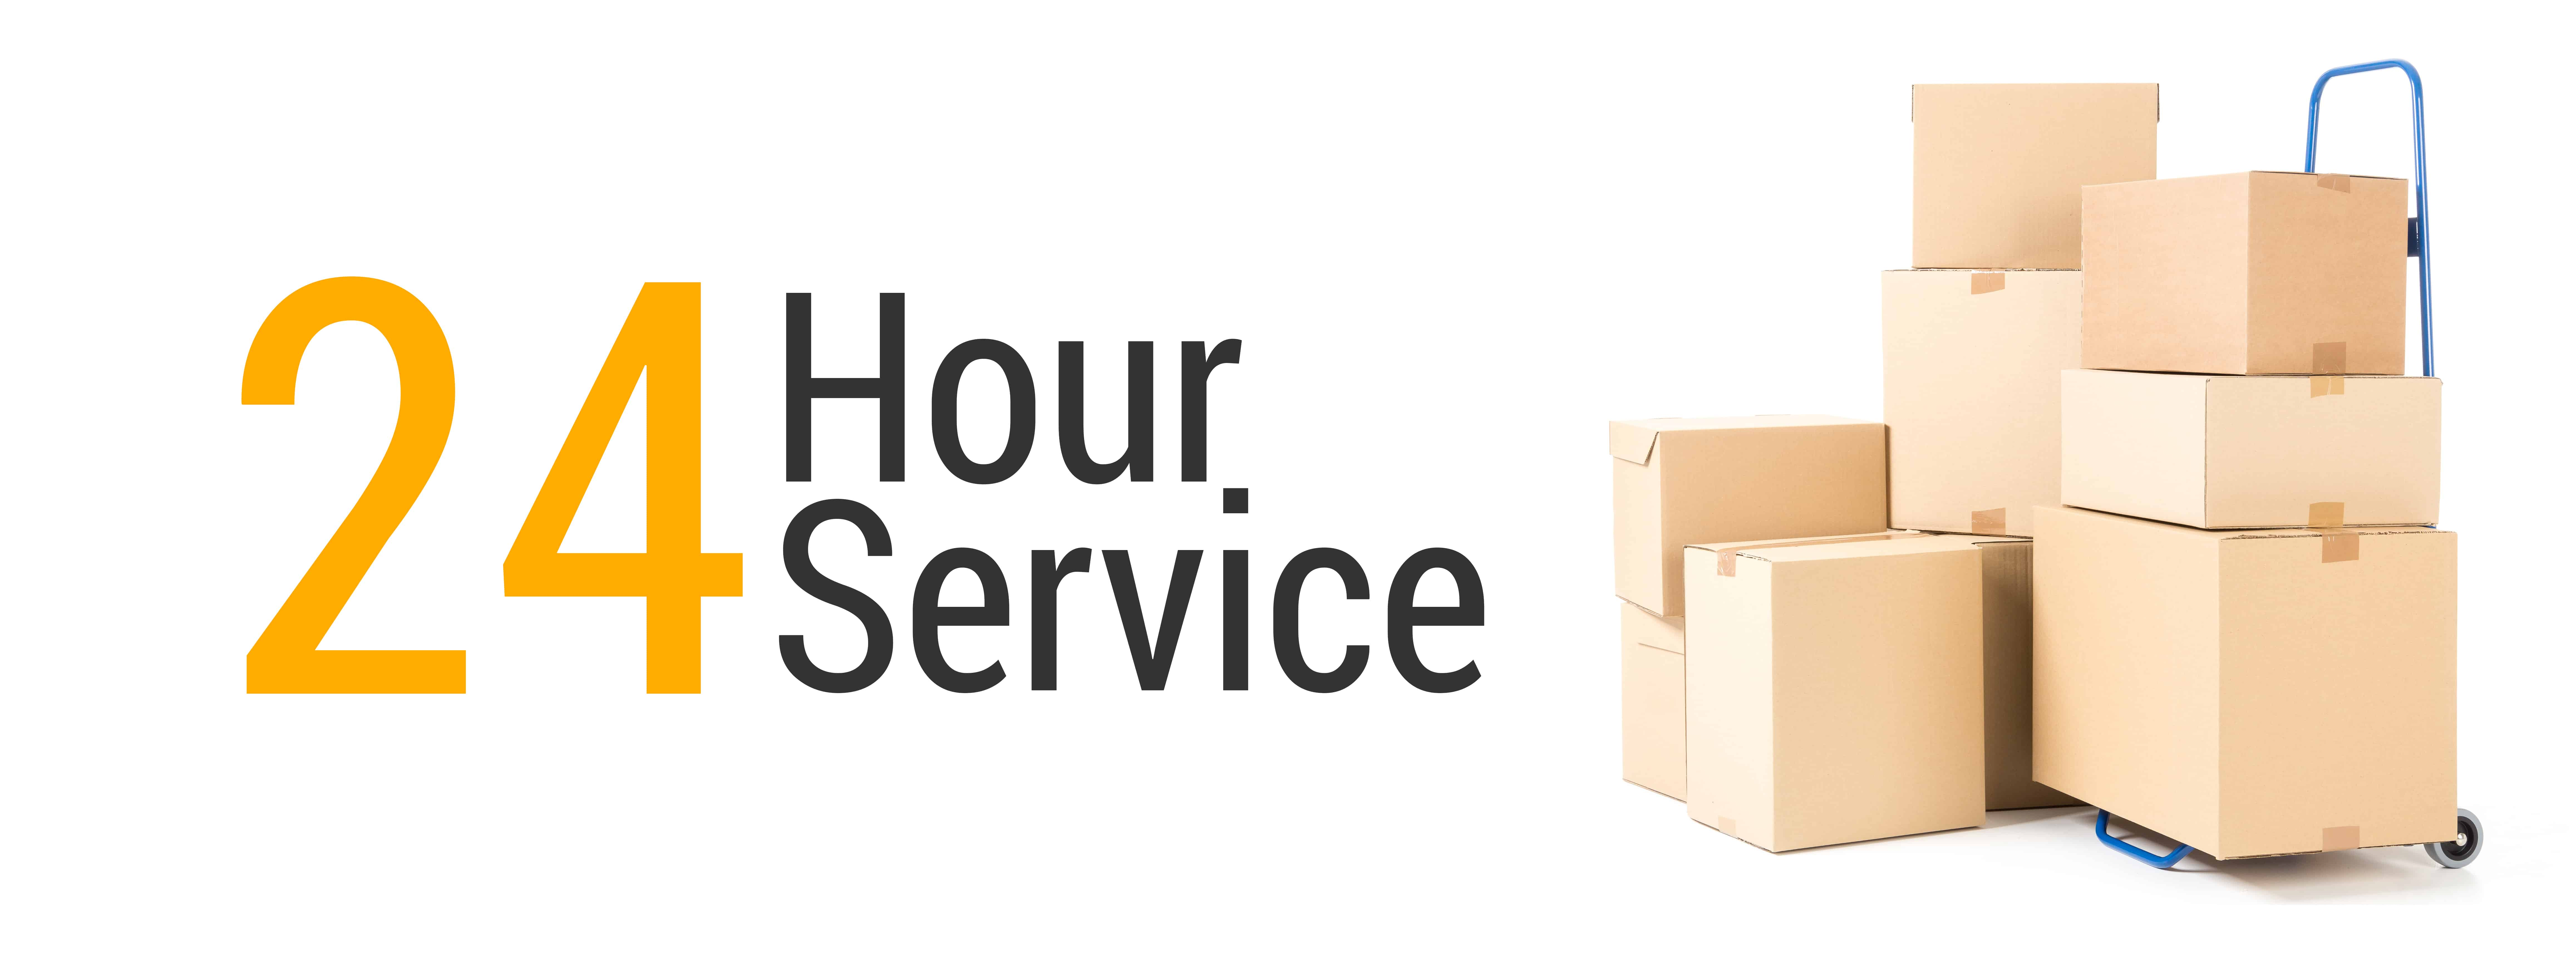 Northern Ireland Express Services. Only premium products will be delivered next day. Express products are subject to a day delivery time; Only premium consignments within the maximum dimensions detailed in the commercial policy ( m x m x m) will be delivered next day.